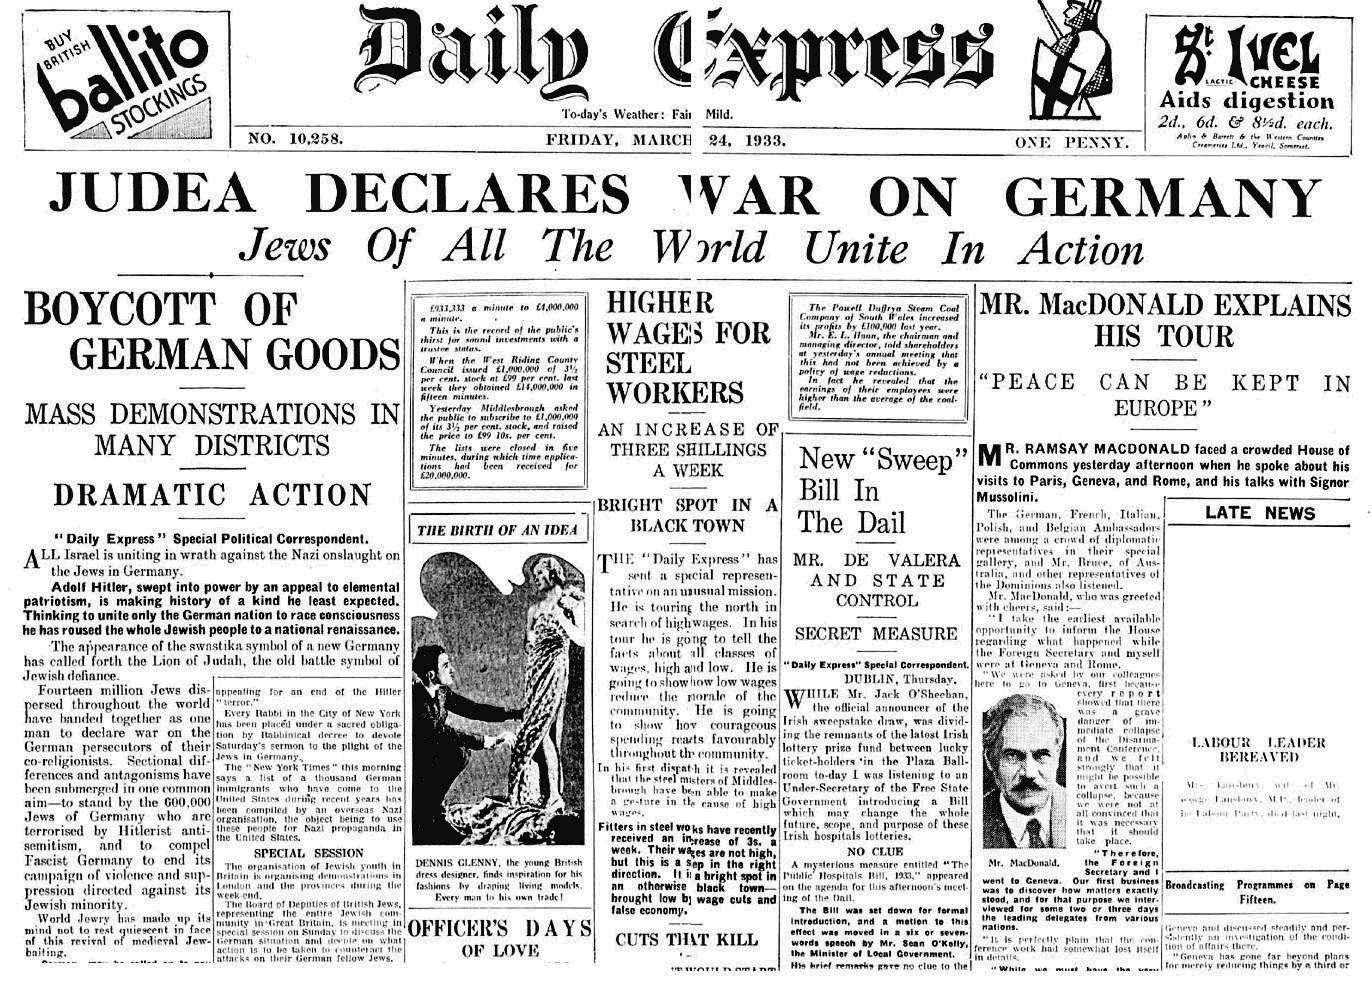 Judea declares war on Germany, on the Daily Express.